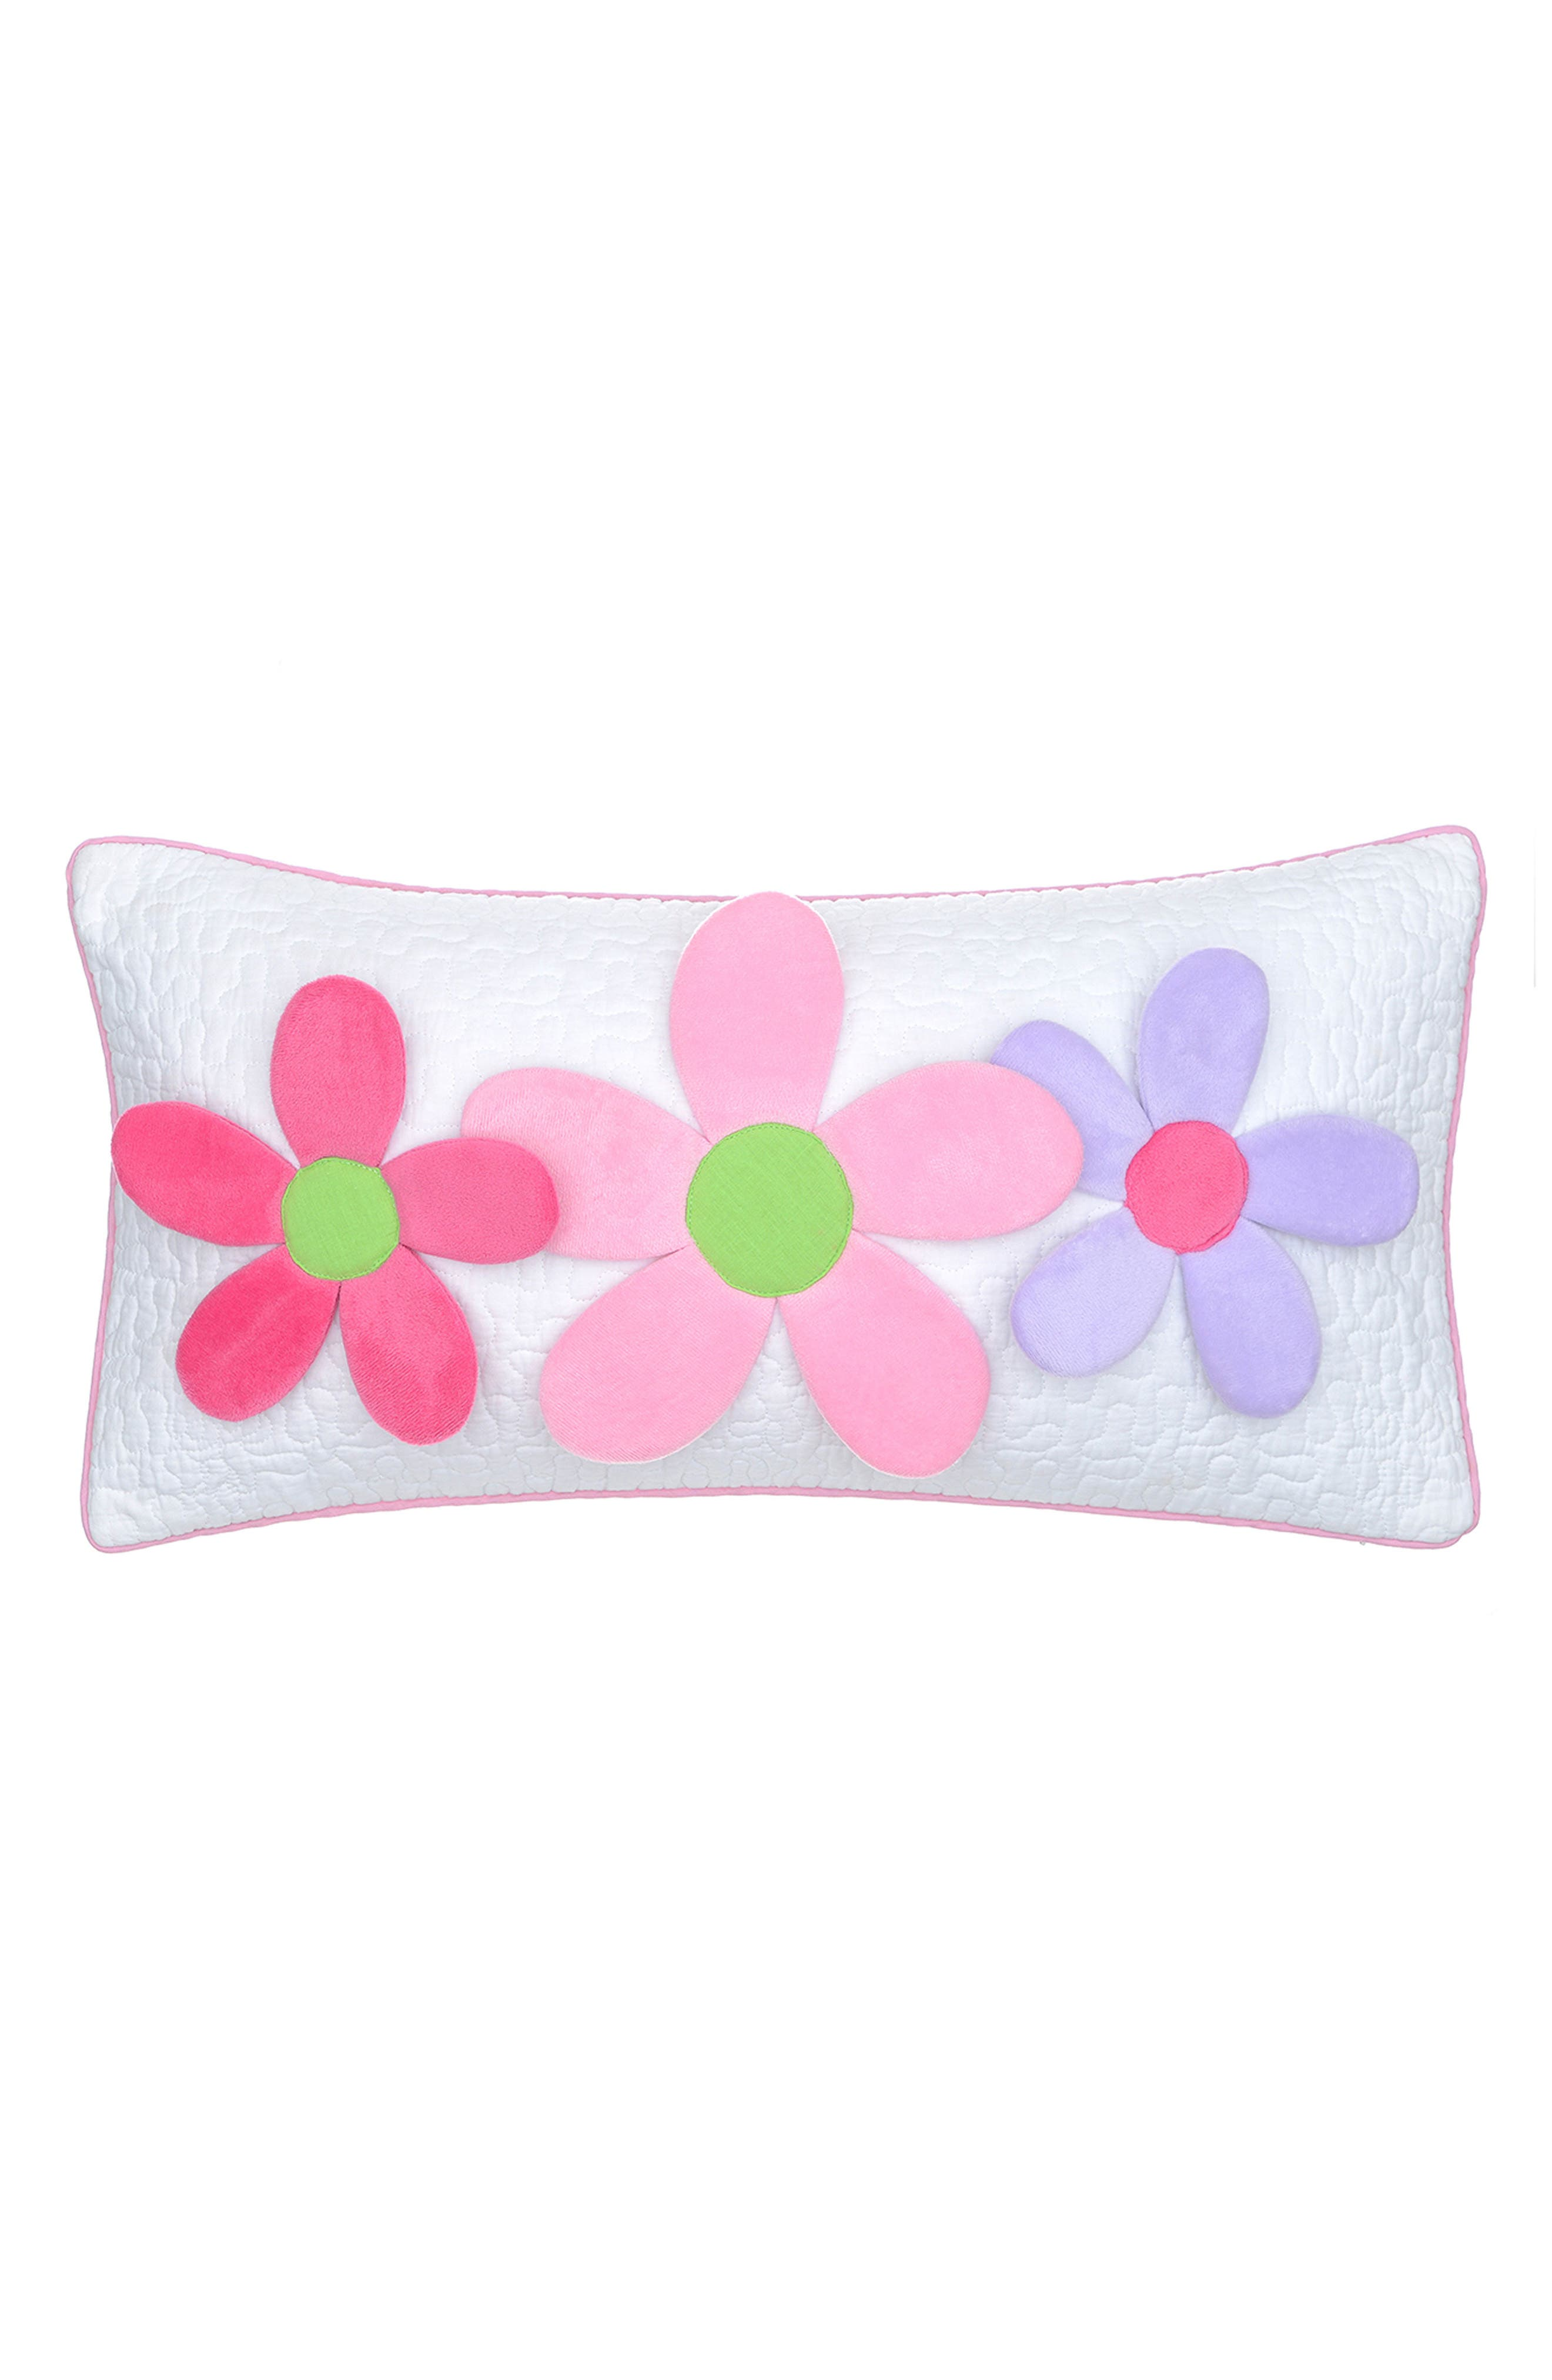 Alternate Image 1 Selected - Levtex Nina Flowers Accent Pillow